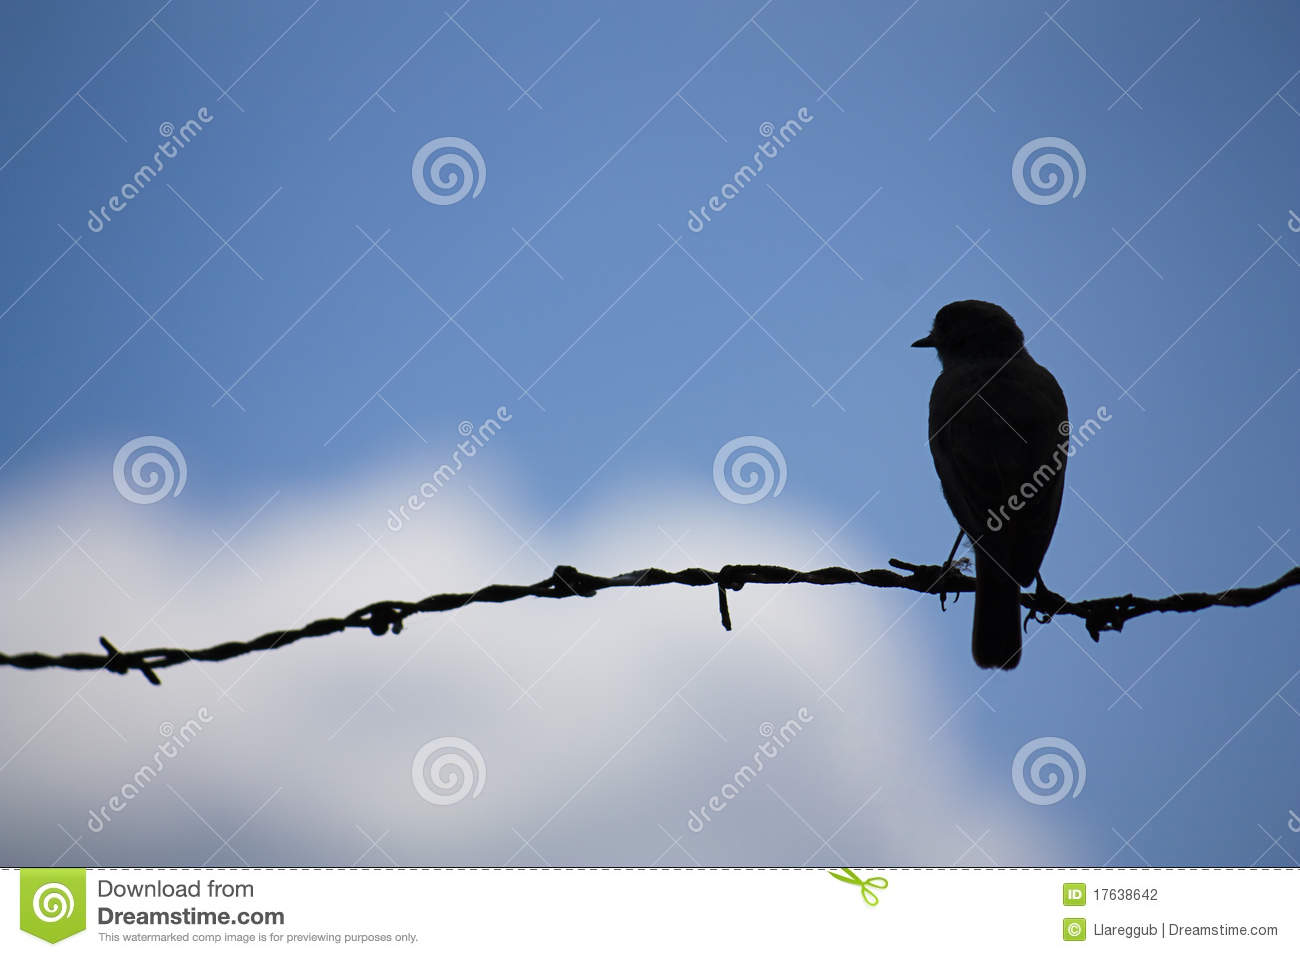 Bird on a wire stock photo. Image of wire, lighting, blues - 17638642